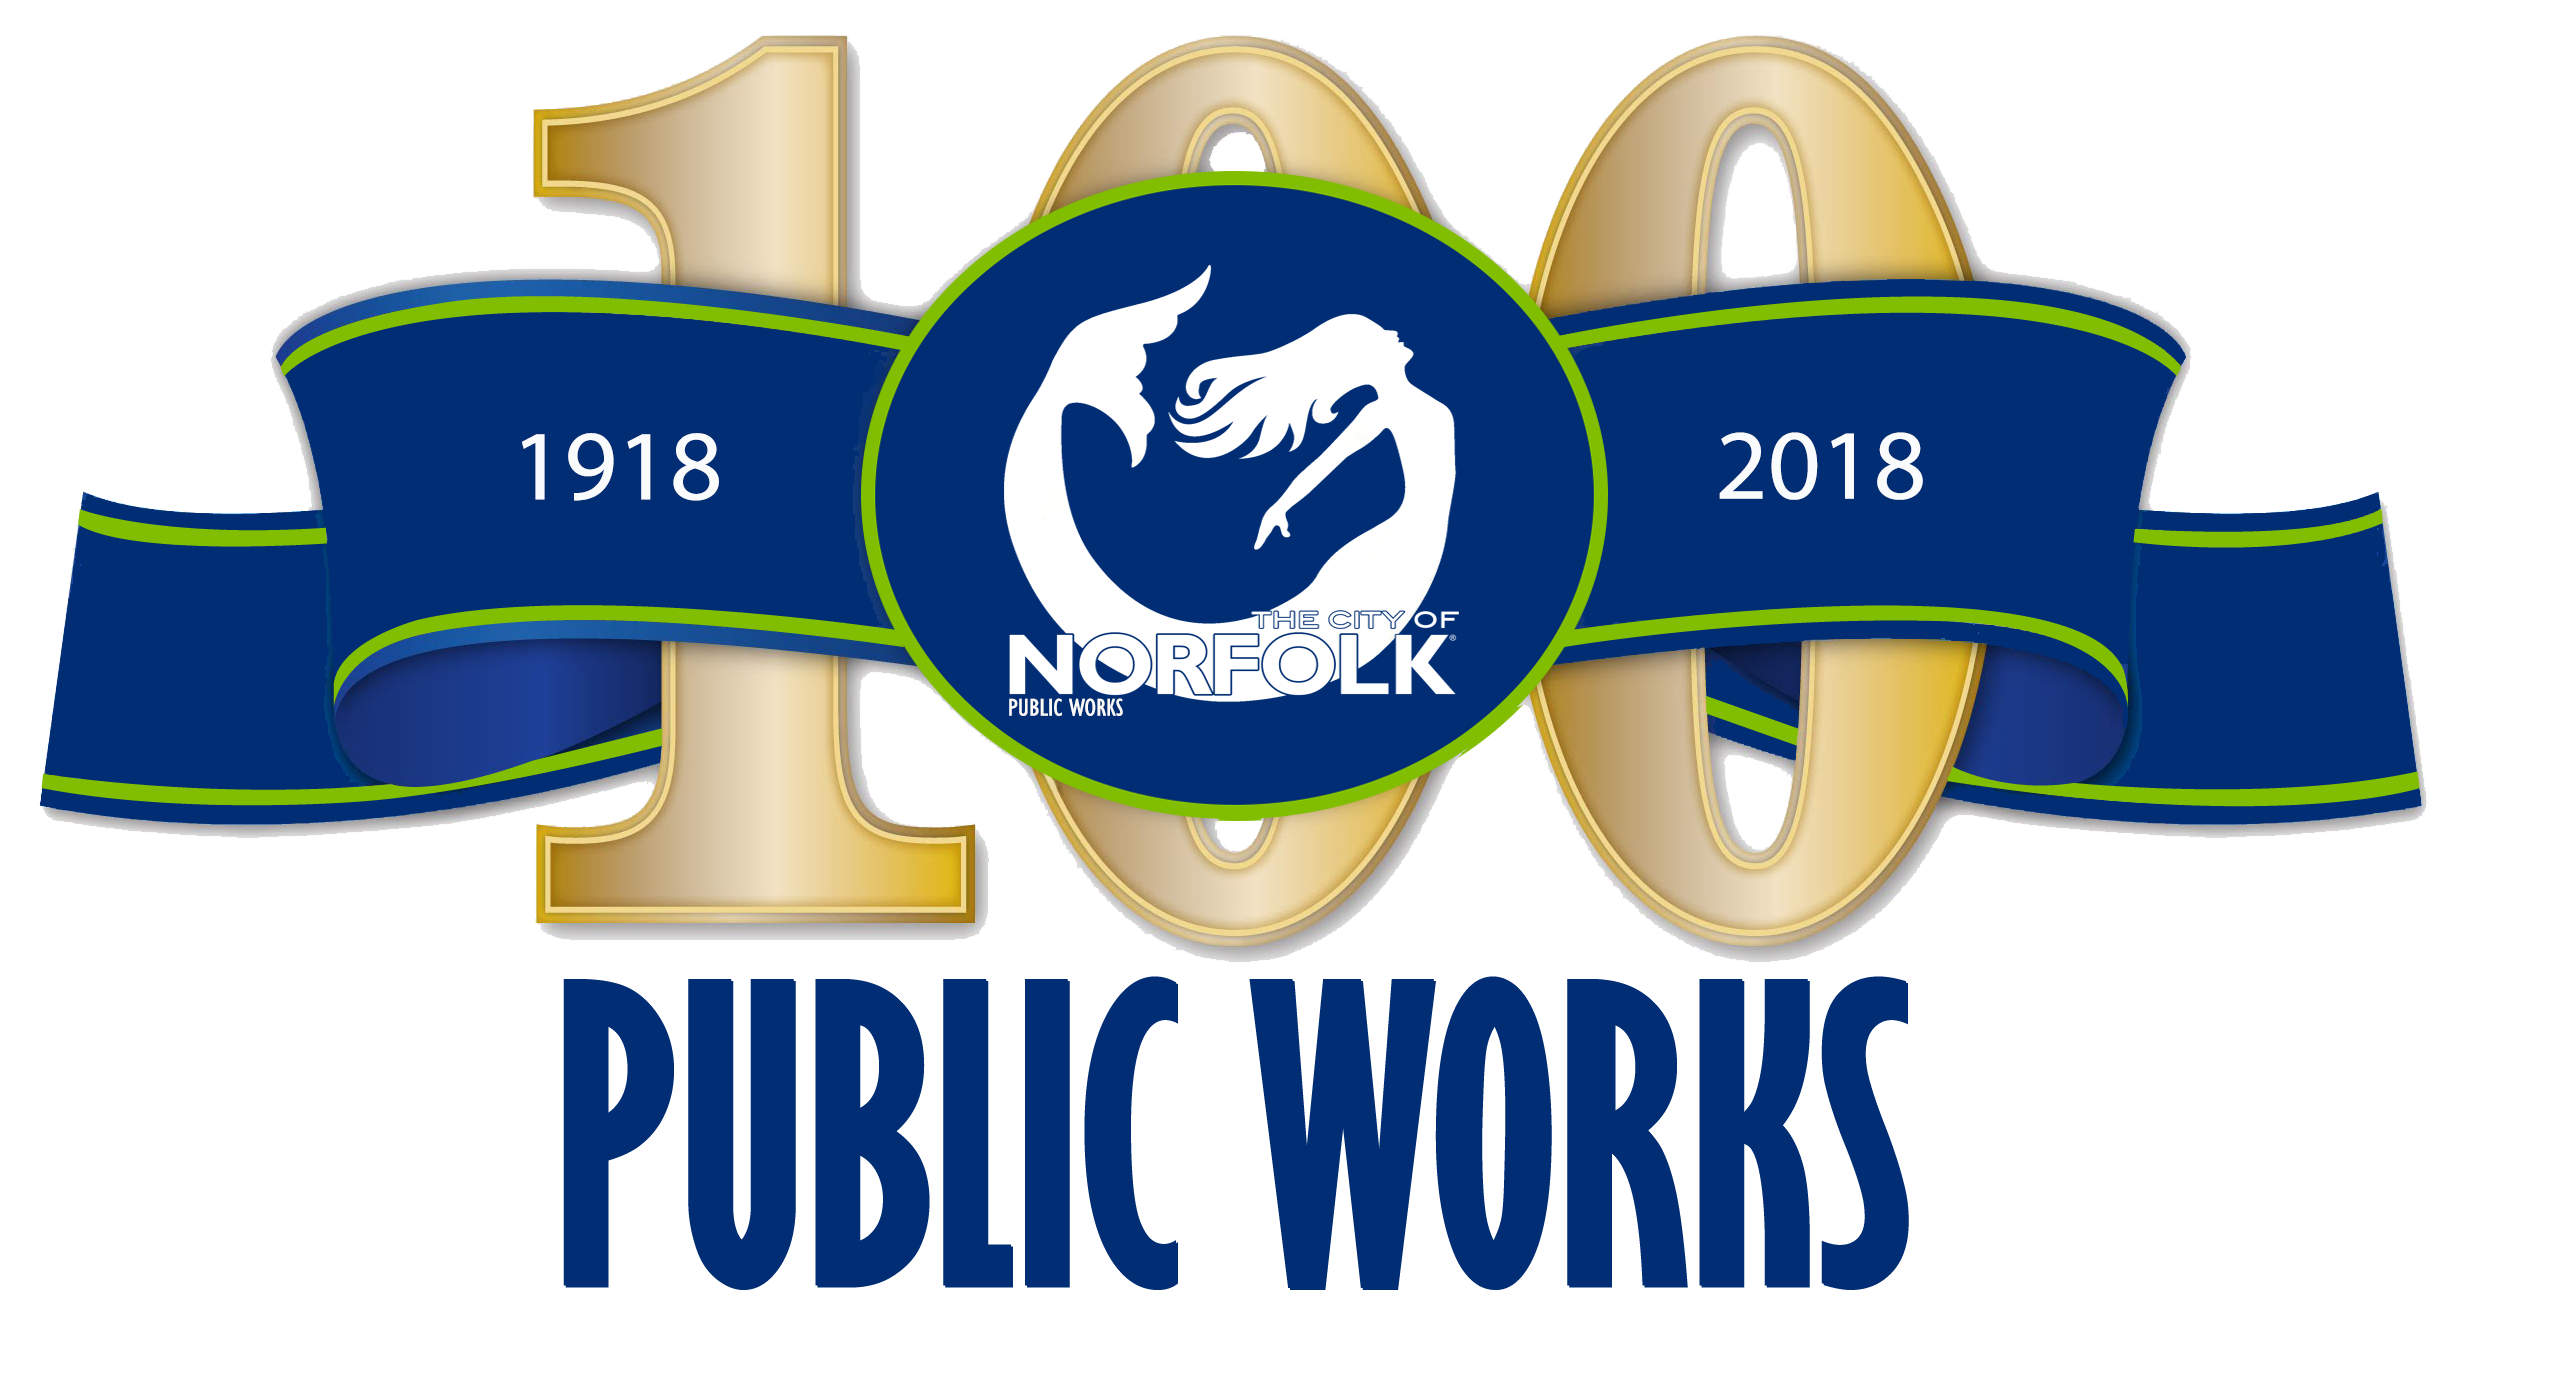 City of norfolk virginia. Wow clipart outstanding job